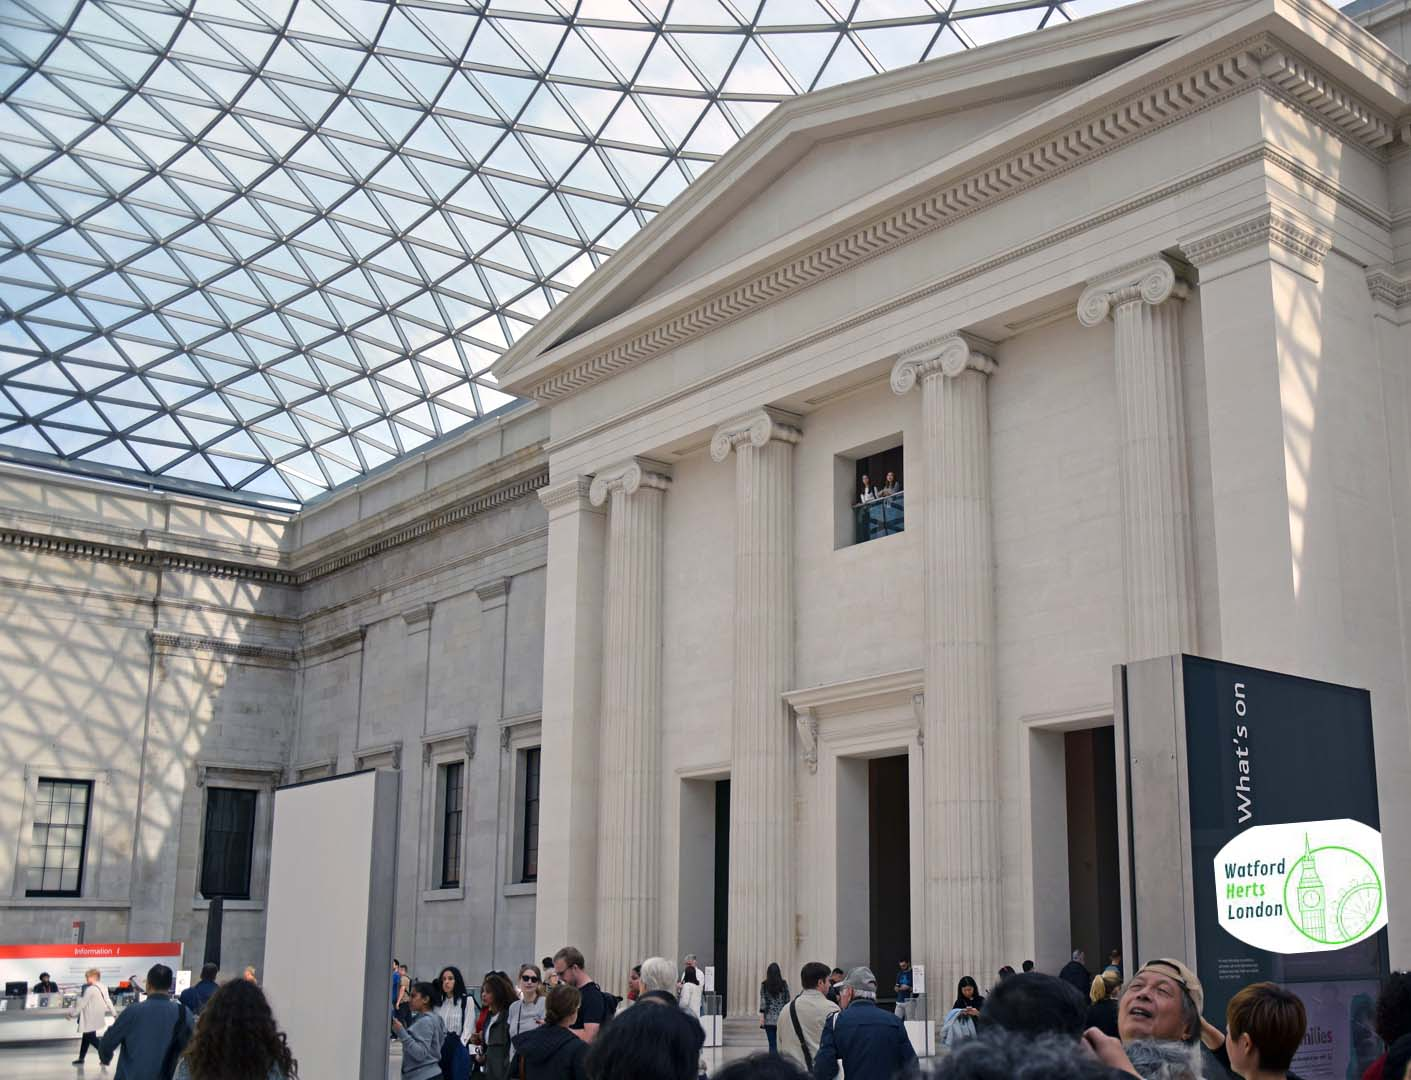 The British Museum, located in the Bloomsbury area of London